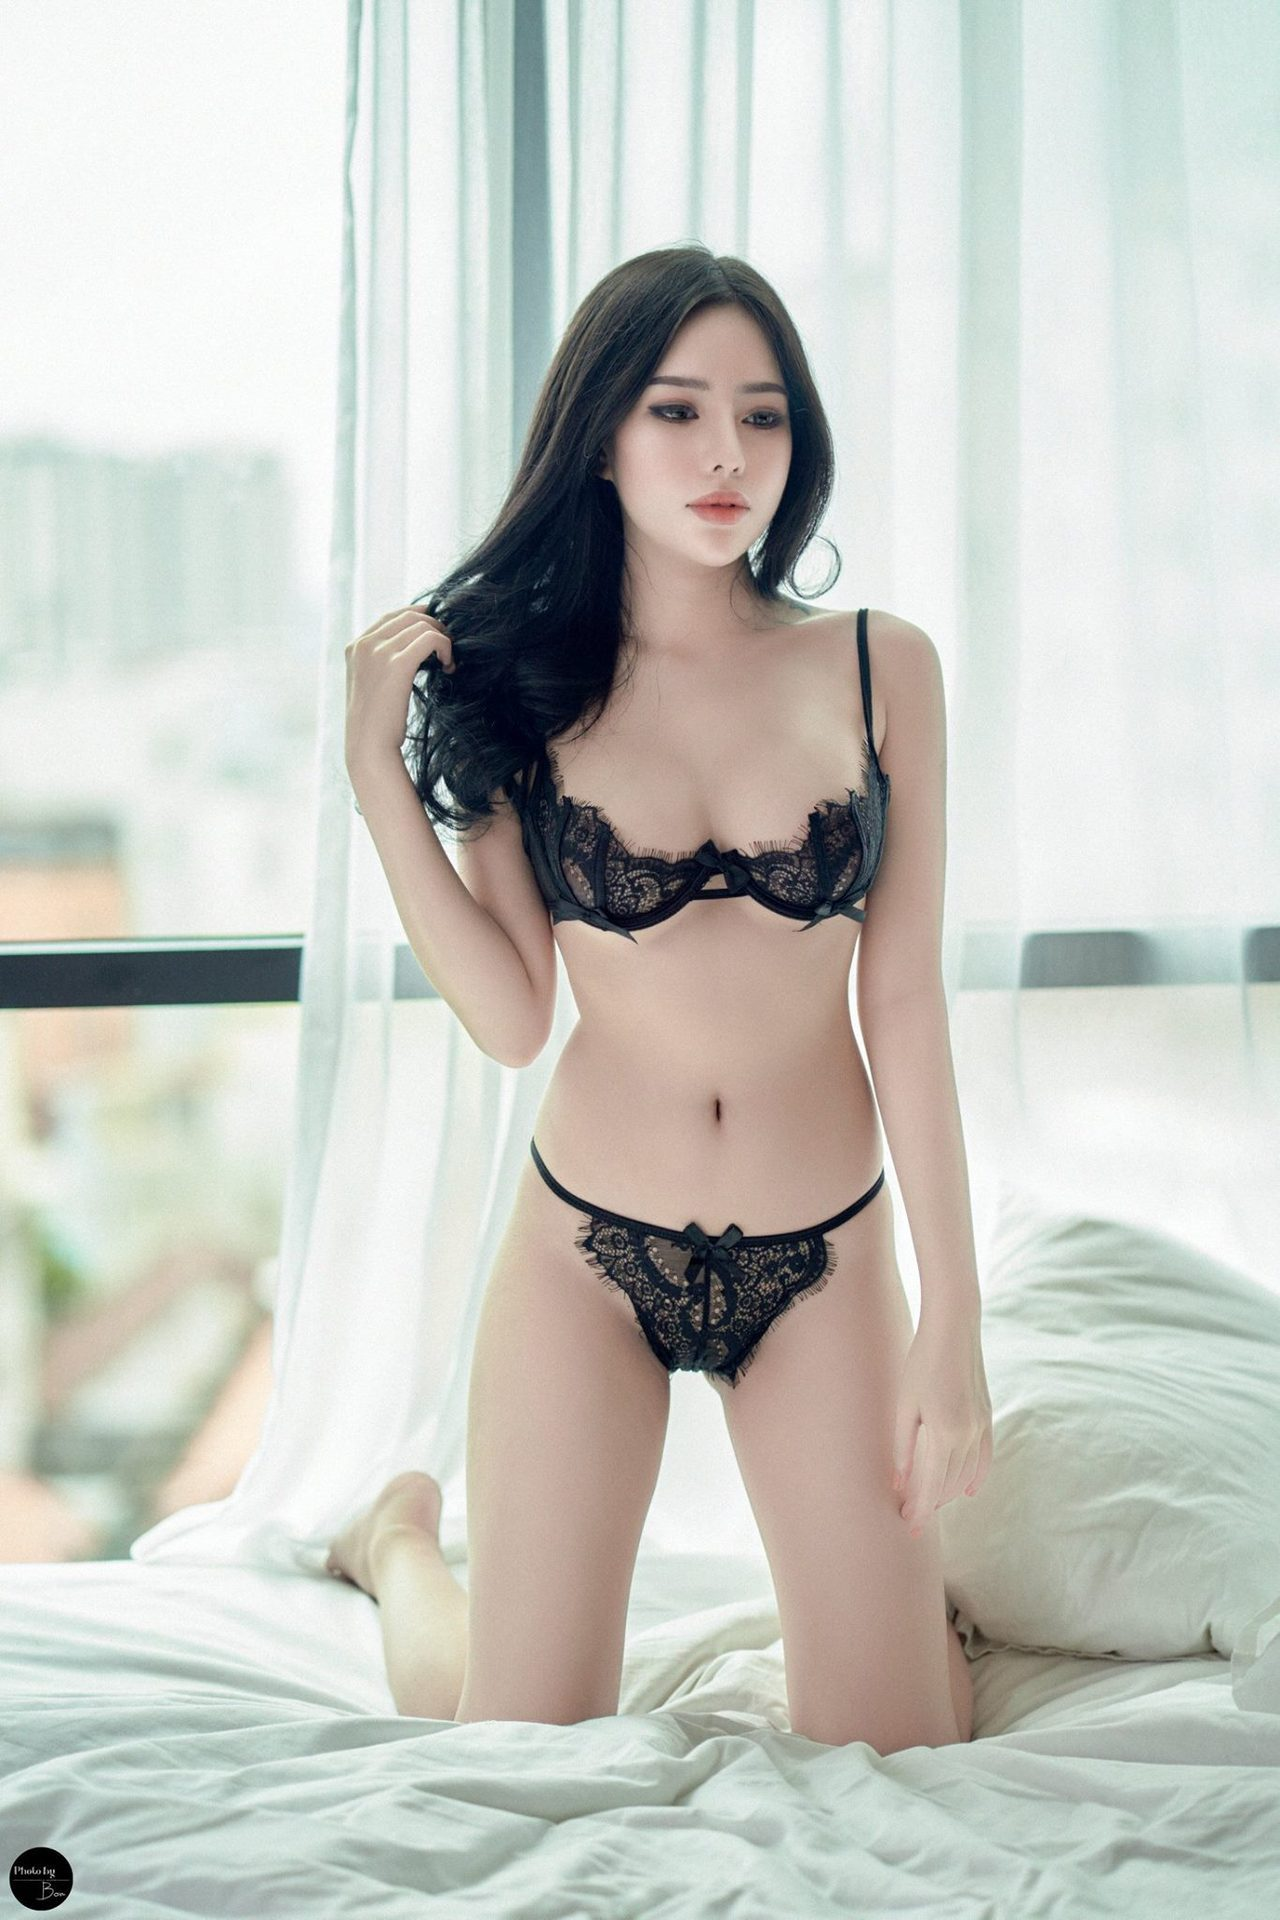 cool girl in sexy lingerie